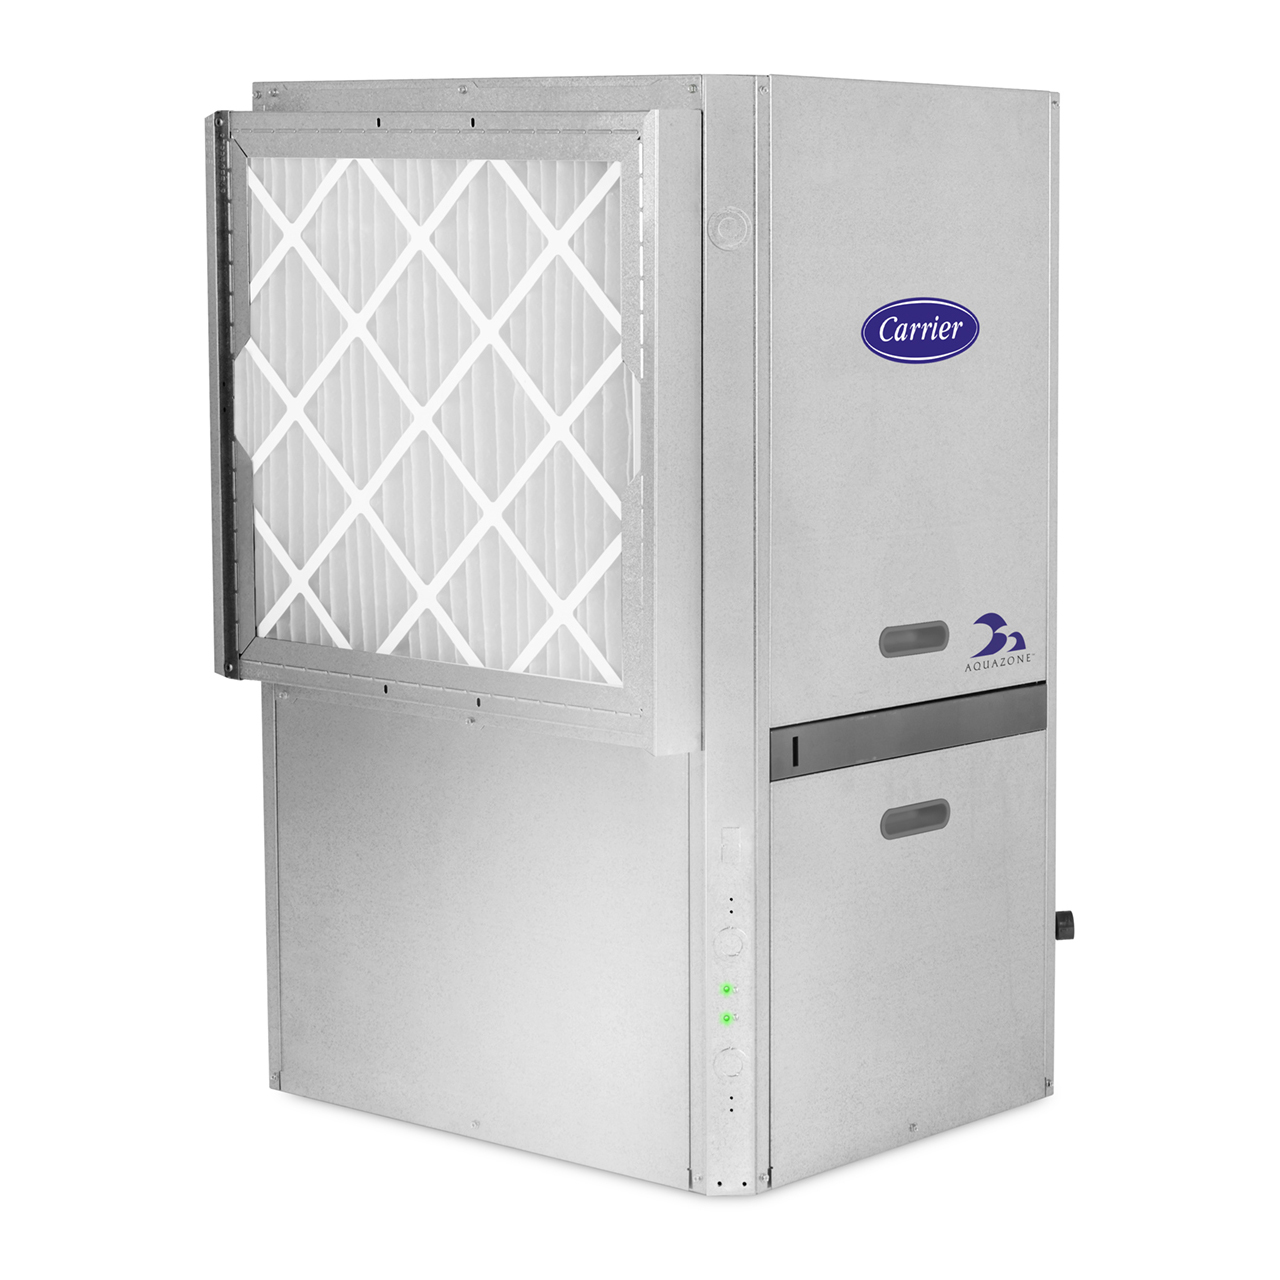 carrier-50ptv-vertical-indoor-water-cooled-two-stage-water-source-heat-pump